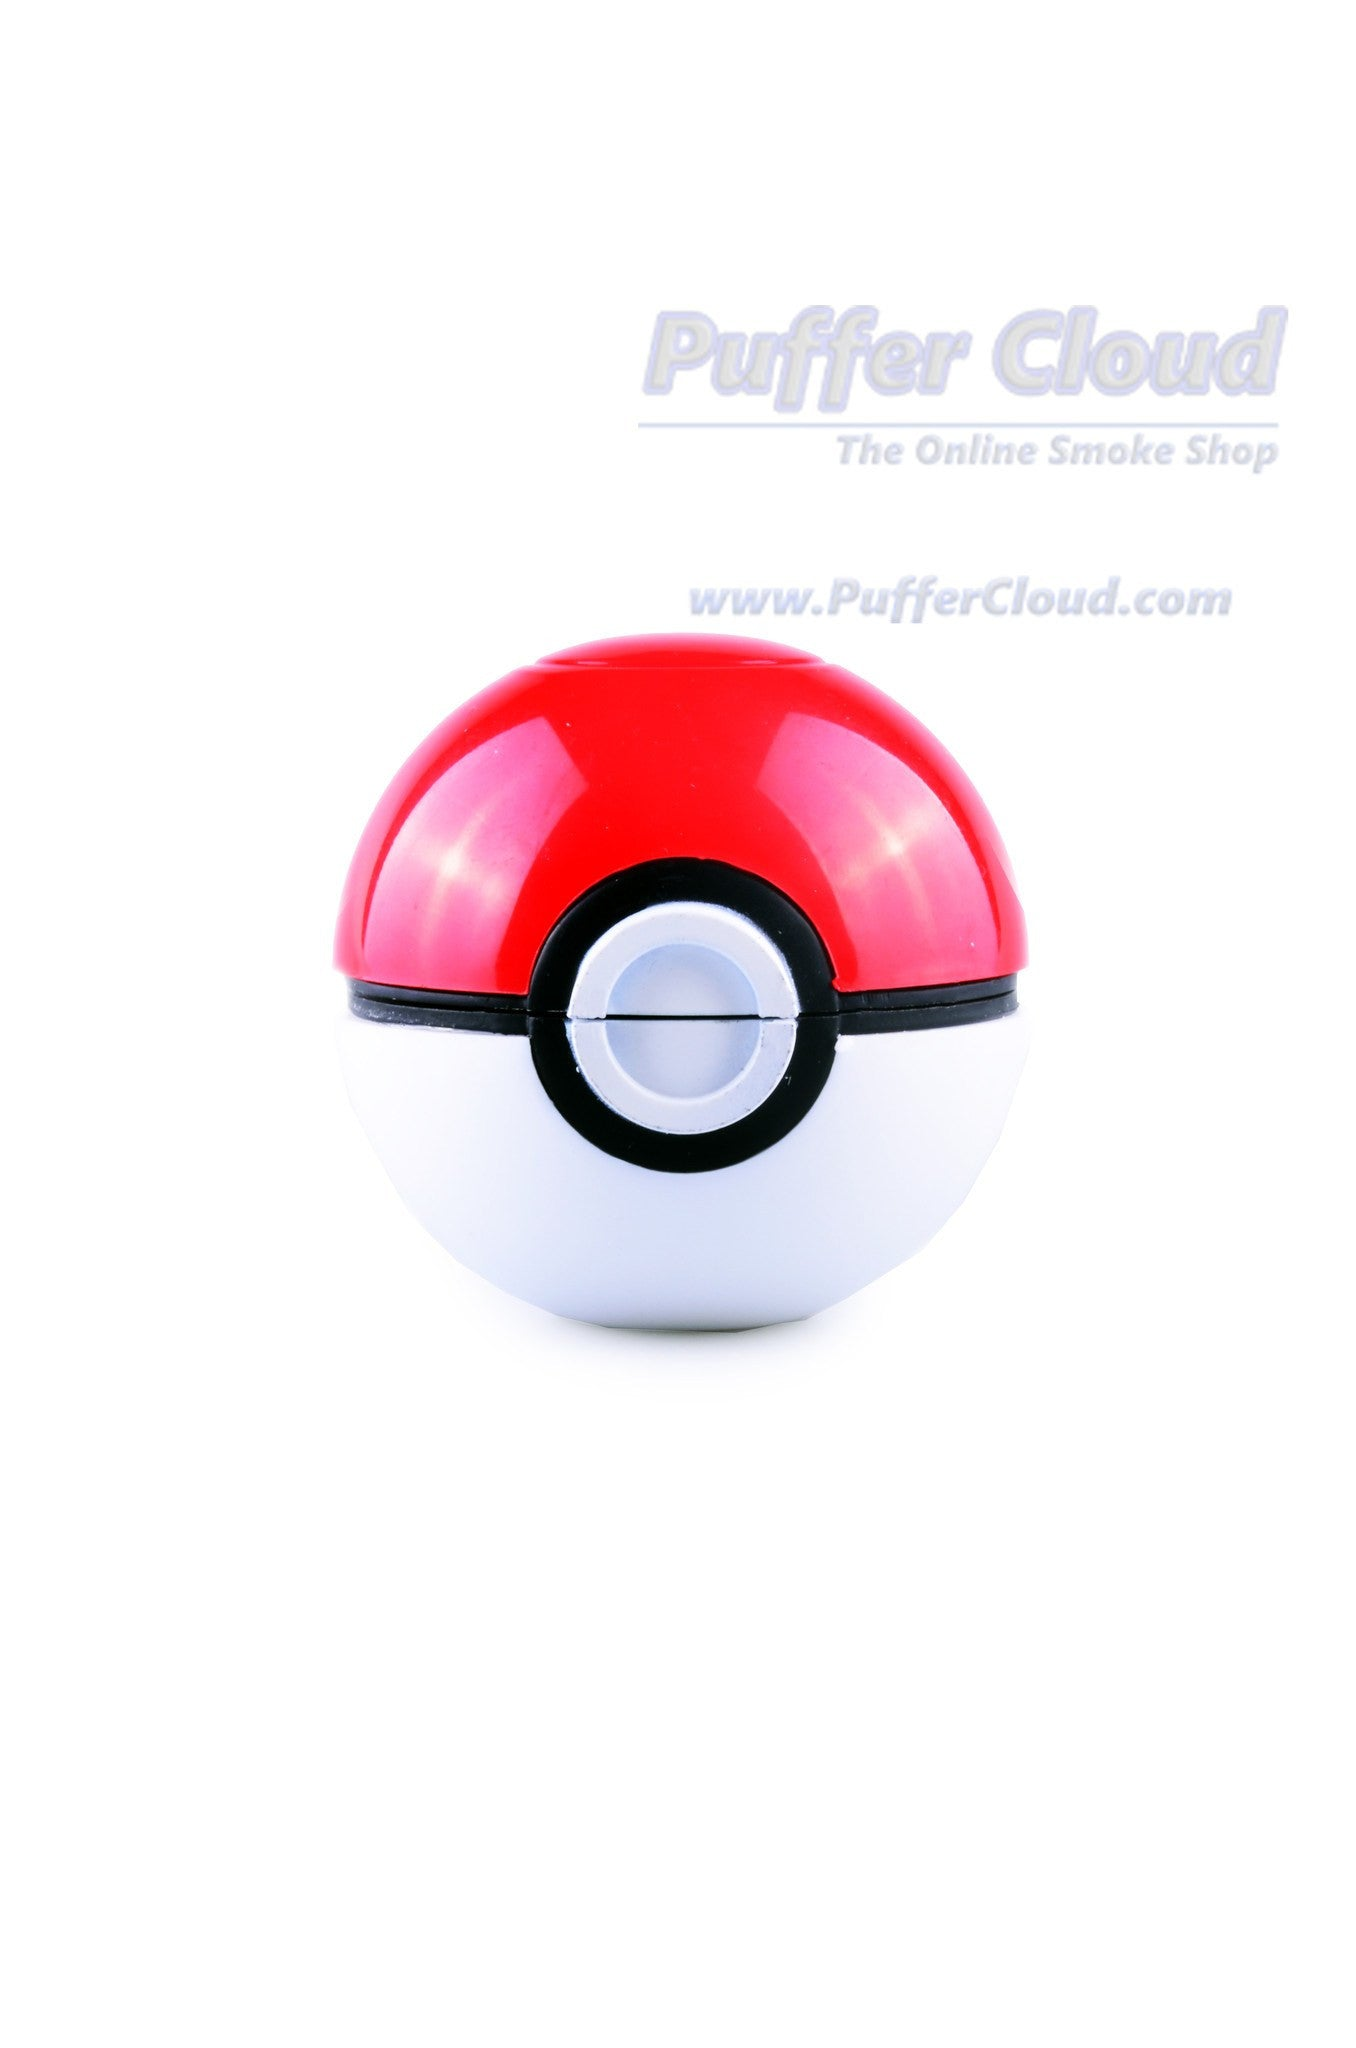 Pokémon Pokéball GrinderAccessoriePuffer Cloud - Puffer Cloud | The Online Smoke Shop